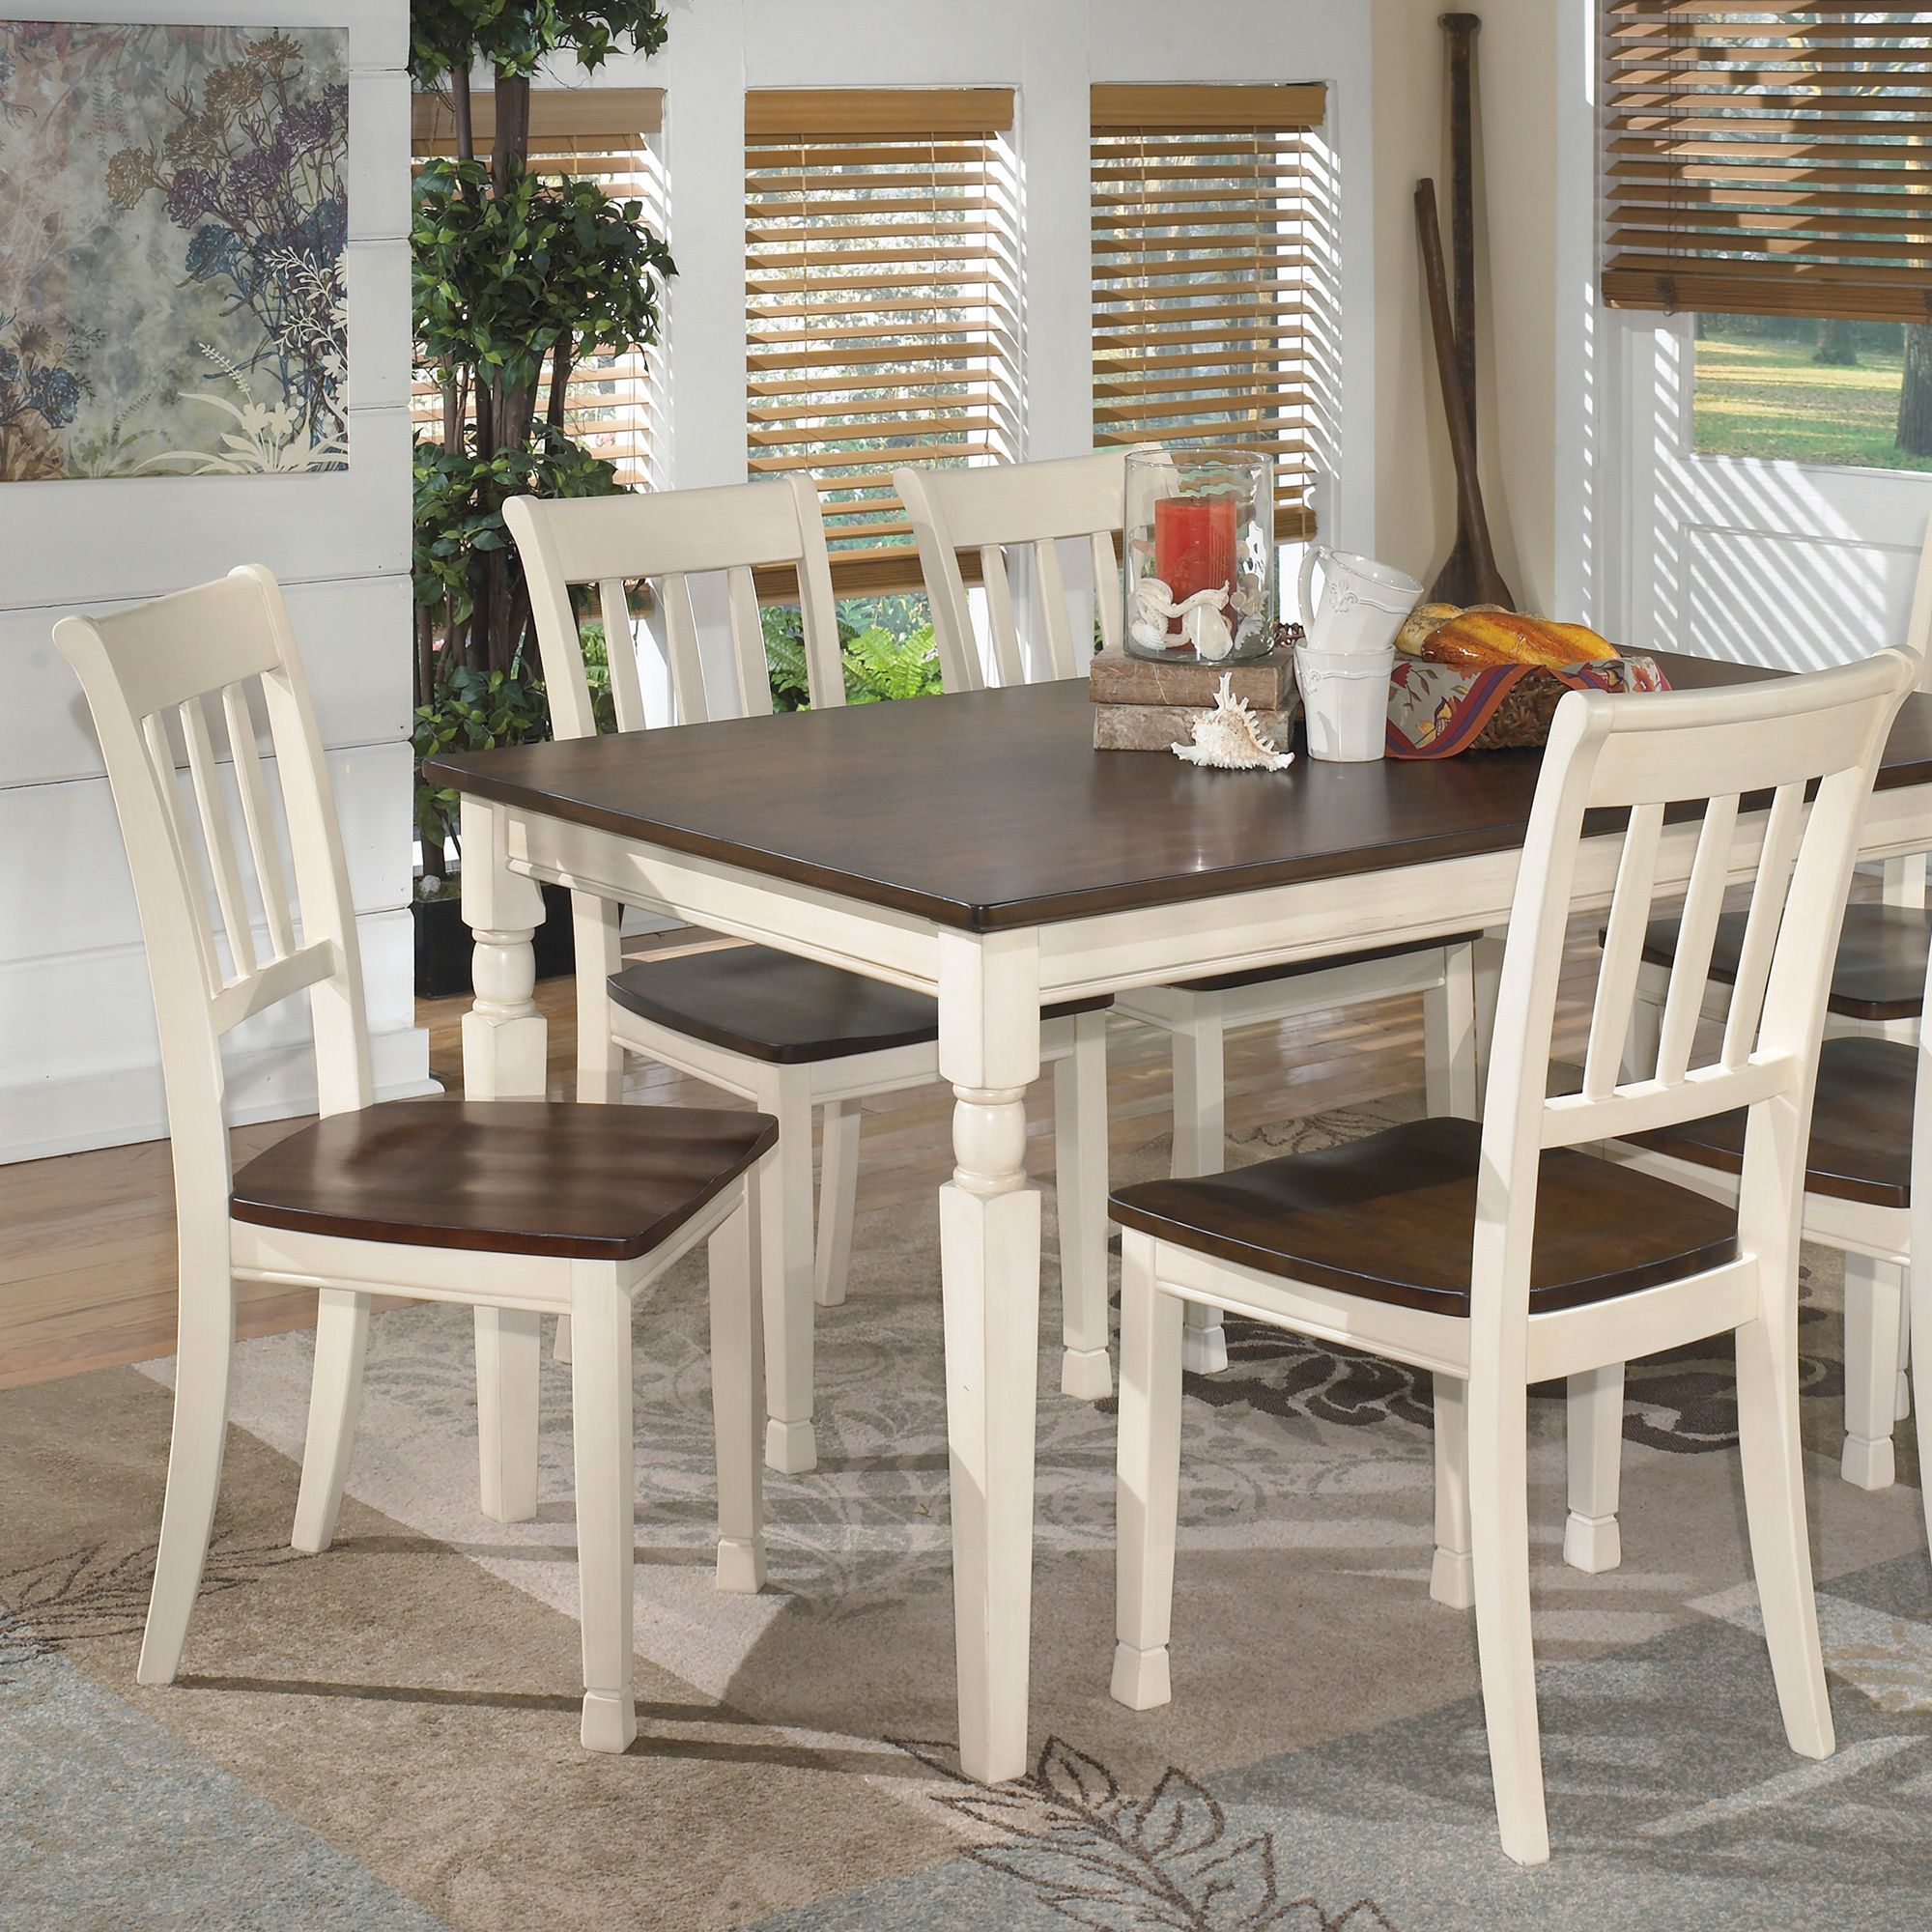 Signature Design By Ashley Whitesburg Two Tone Dining Room Dining Chair Set Of 2 With Images Kitchen Table Settings Large Dining Room Rectangular Dining Room Table